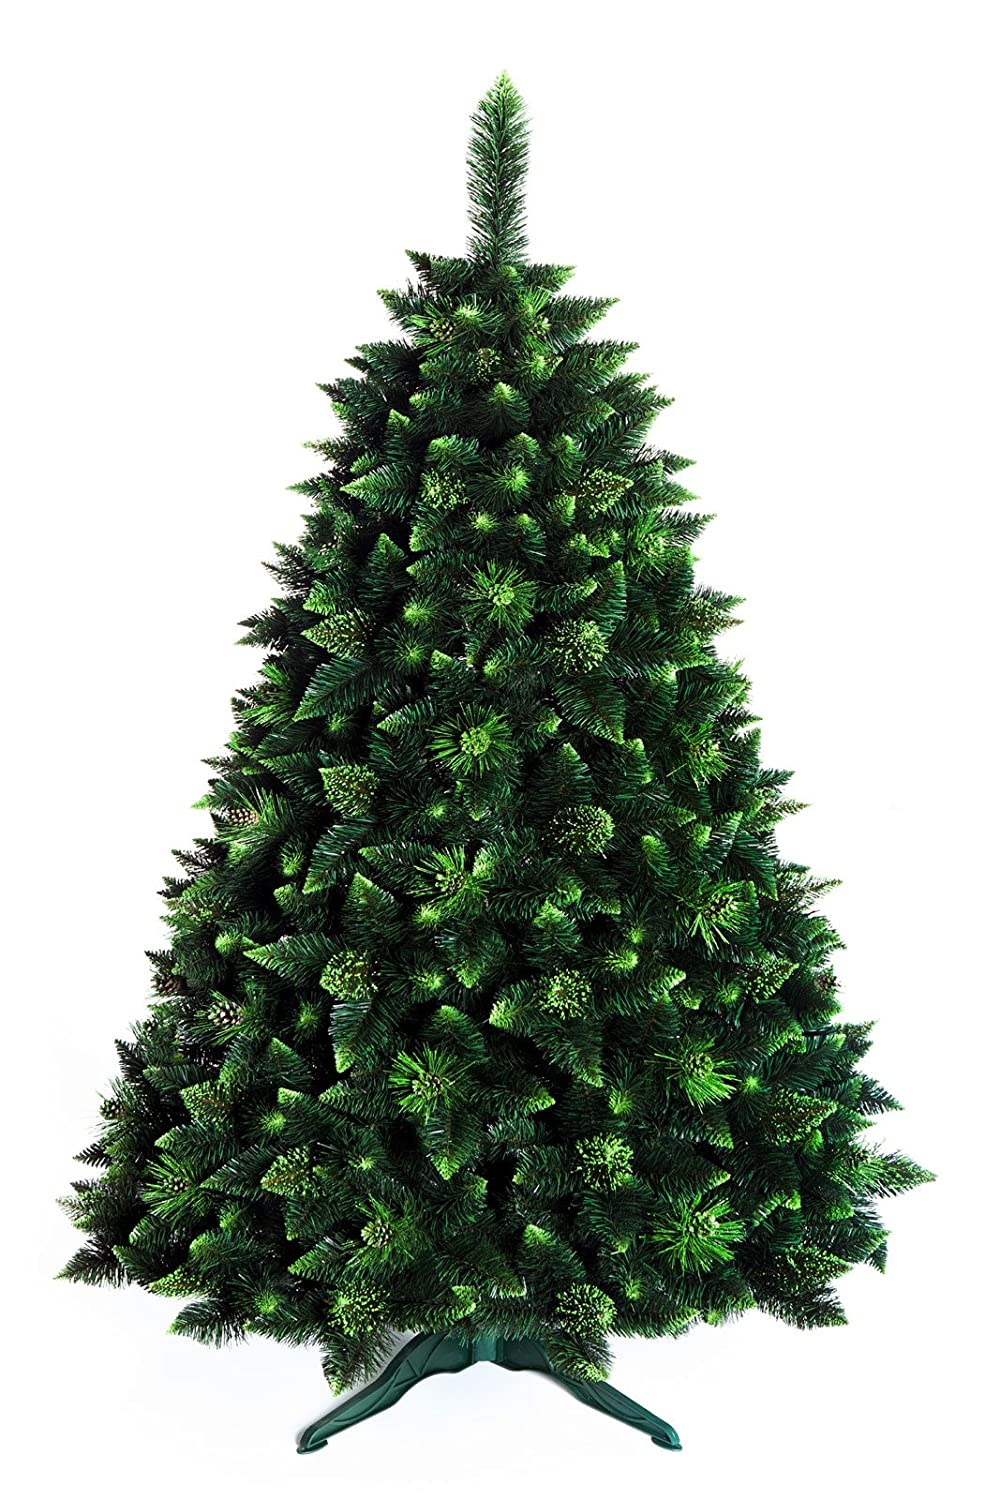 DWA CHRISTMAS TREE 7ft New Boxed Traditional Forest Green Luxury TREE - 220cm - OLIVE PINE with crystals